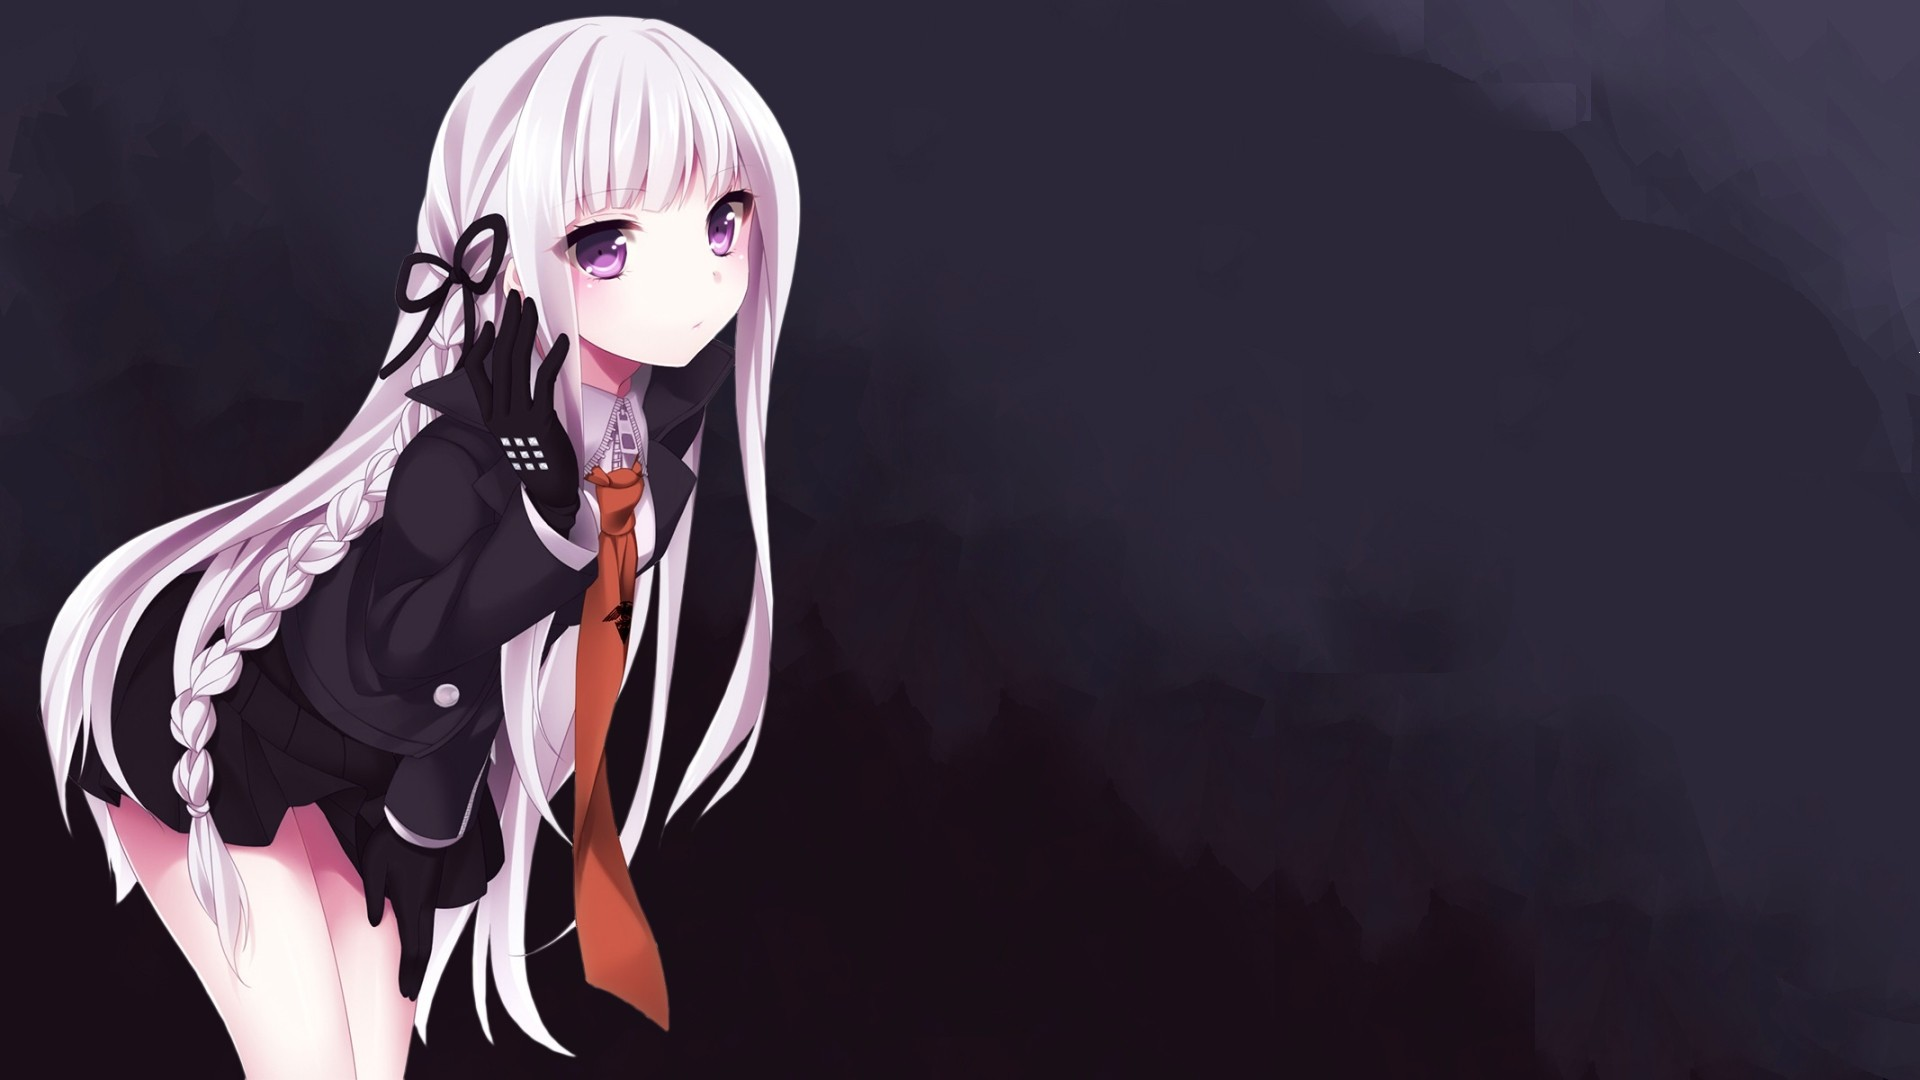 kyouko kirigiri full hd wallpaper and background image